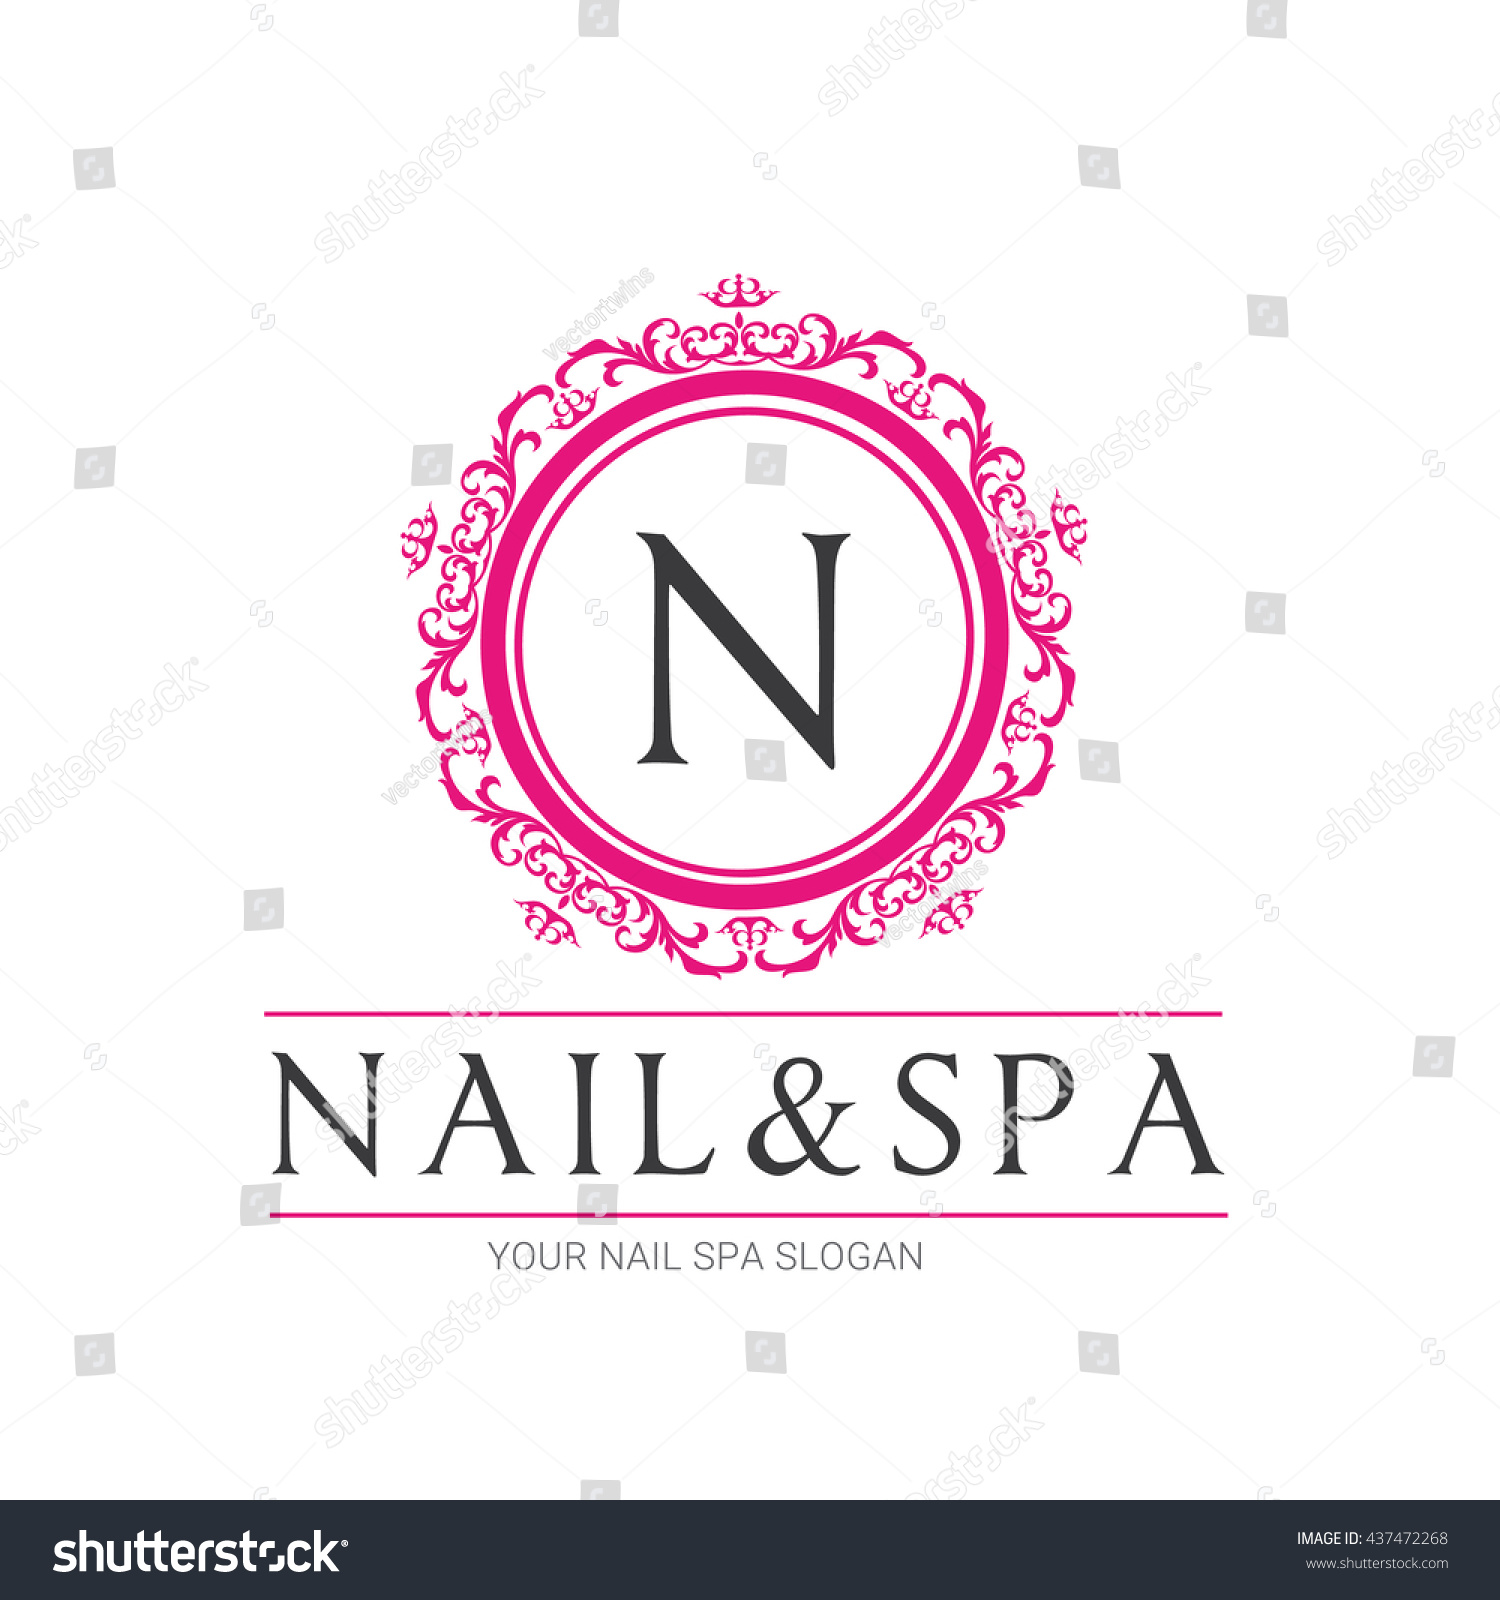 nail salon logo templates the image kid